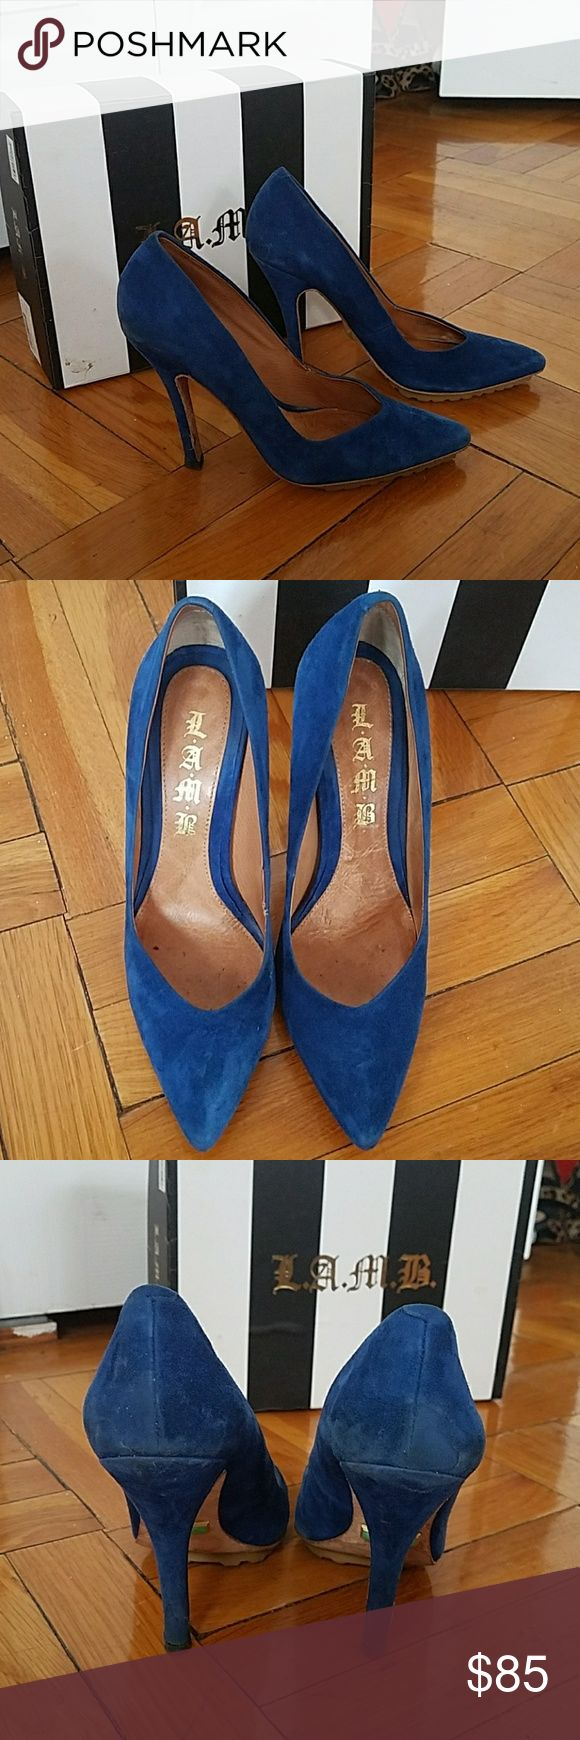 Get you blue suede shoes!   Blue suede pump Lamb blue suede pump with lug sole. These pumps are sexy and the lug sole makes them so comfortable and no slipping. Good condition lamb Shoes Heels